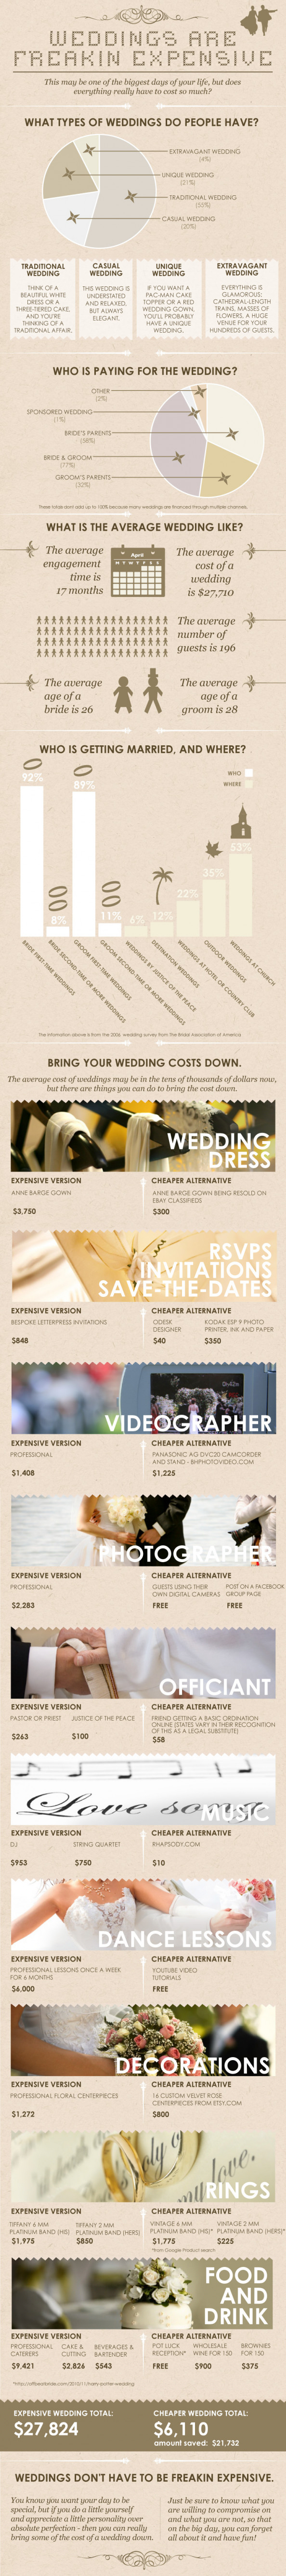 Weddings Are Freakin' Expensive Infographic